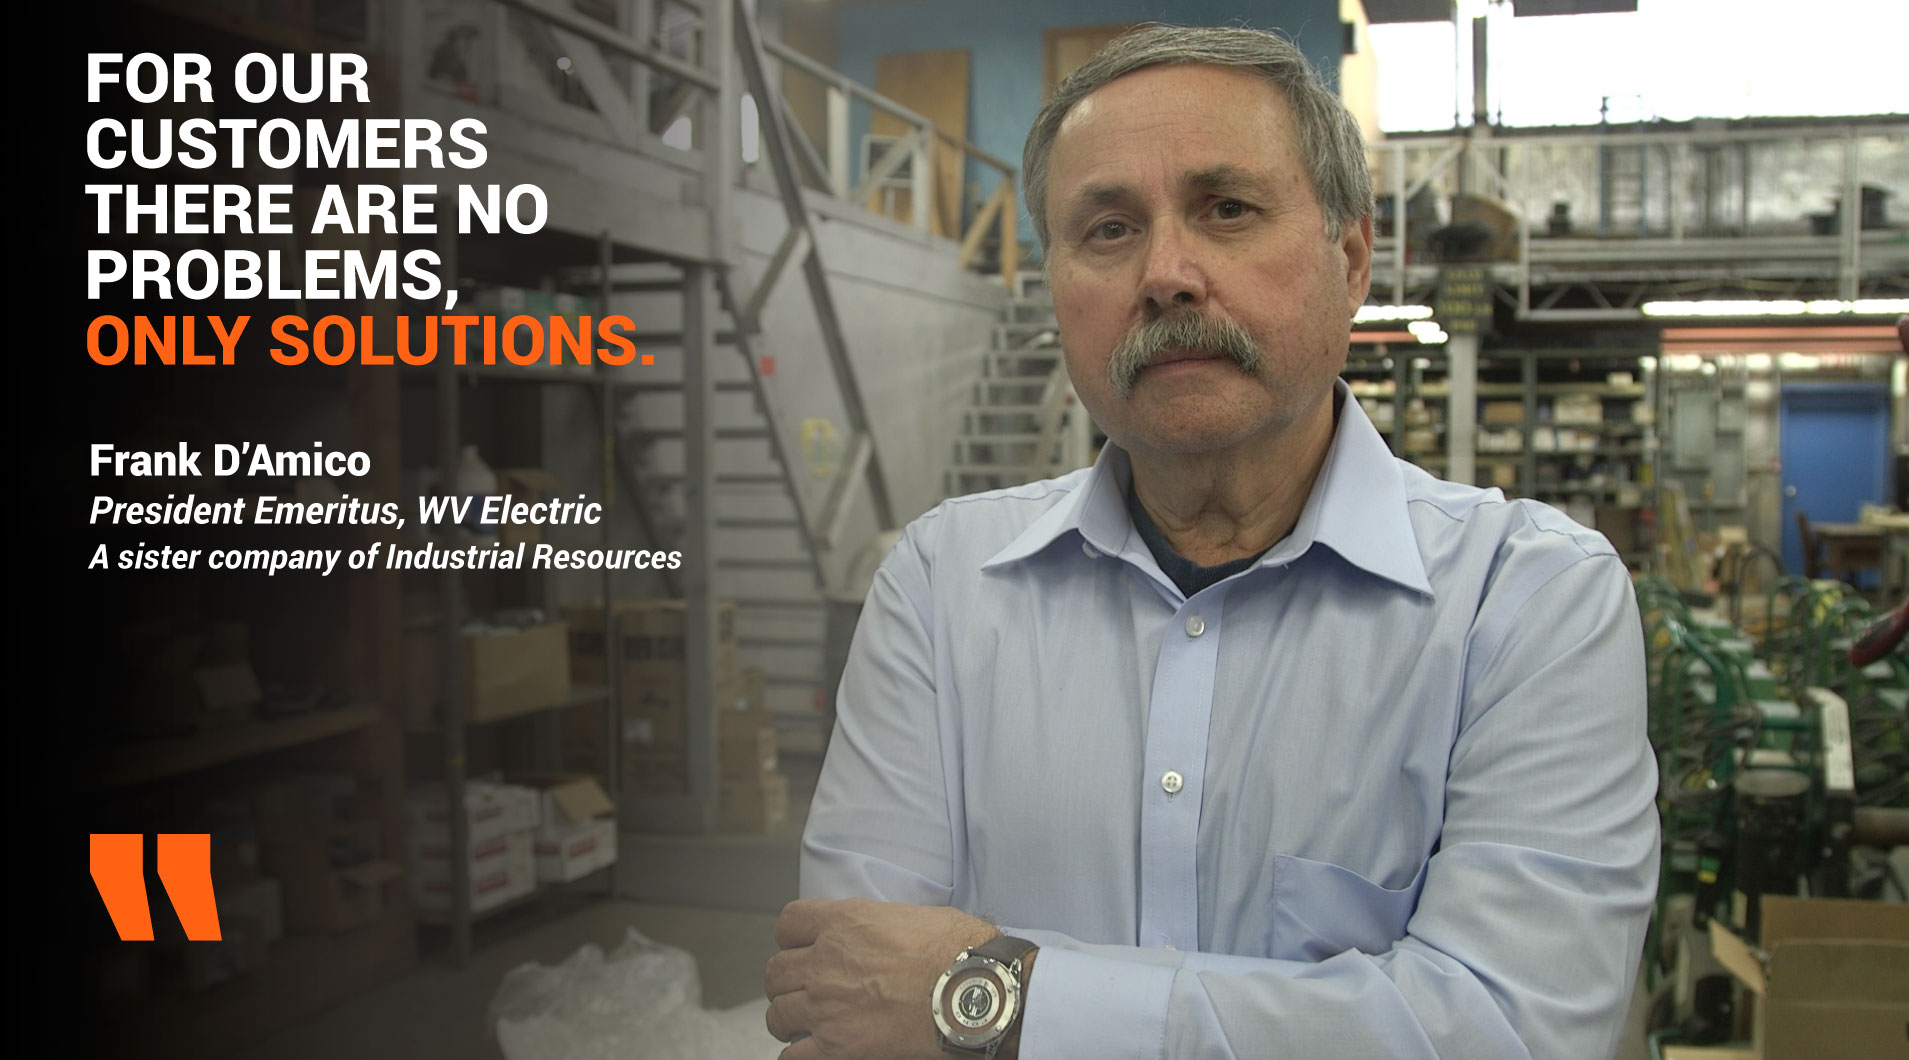 Frank D'Amico President Emeritus of WV Electric - A sister company of Industrial Resources